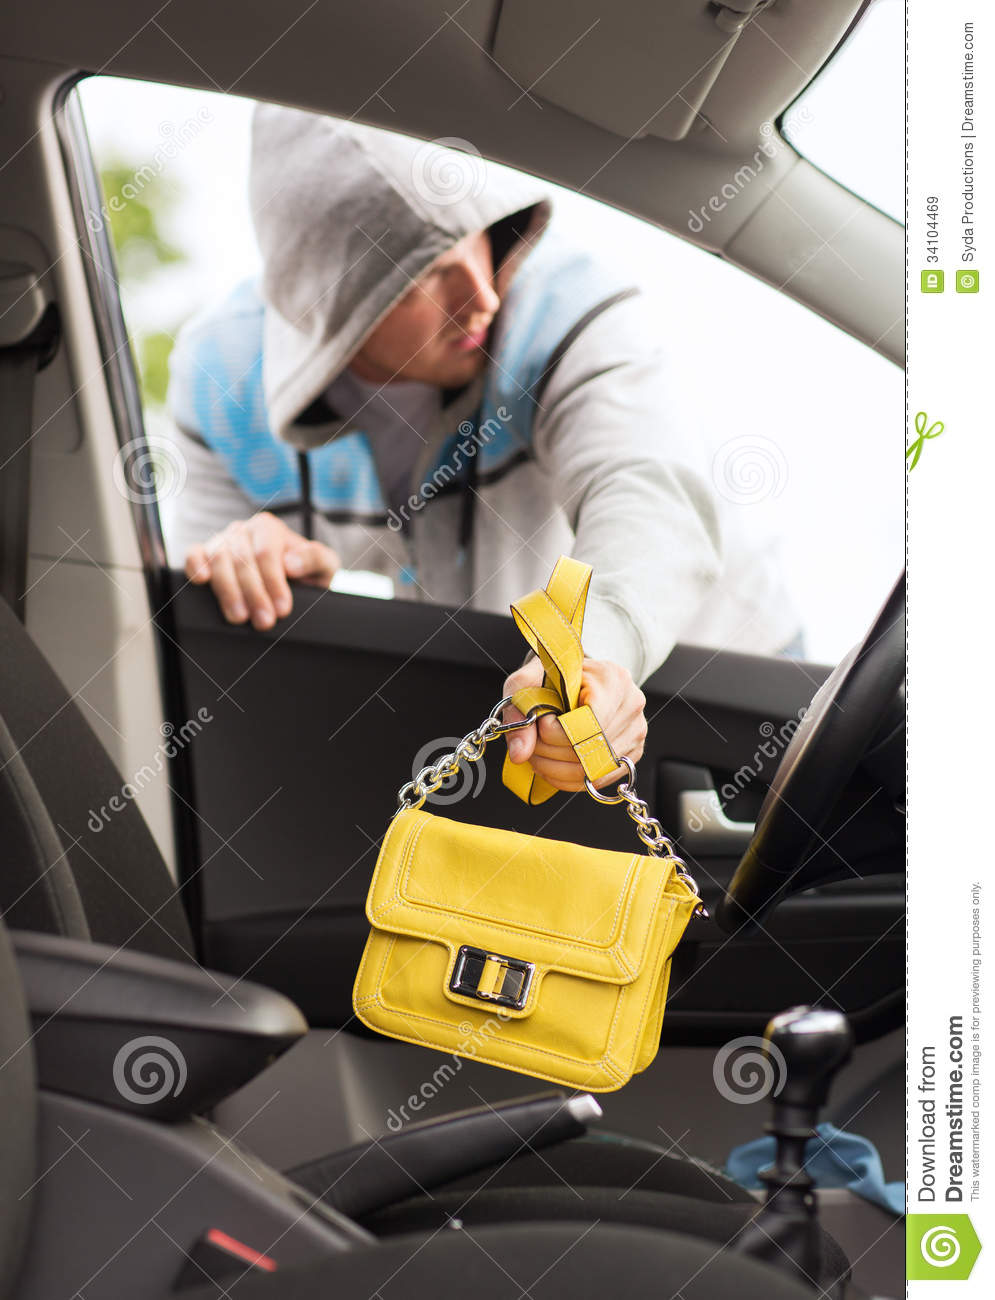 13/10/2014· about press copyright contact us creators advertise developers terms privacy policy & safety how youtube works test new features press copyright contact us creators. Thief Stealing Bag From The Car Royalty Free Stock Images